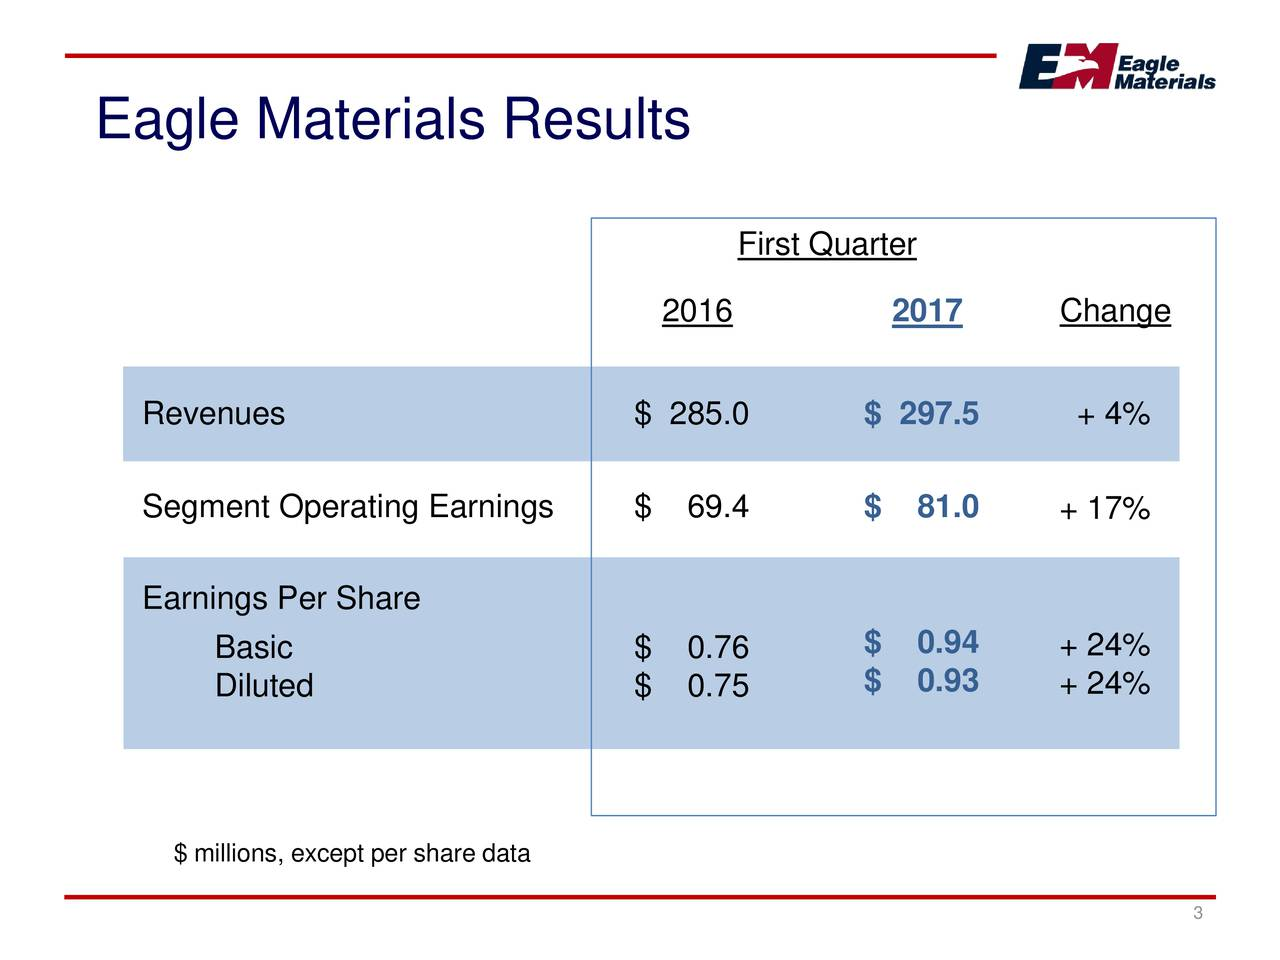 First Quarter 2016 2017 Change Revenues $ 285.0 $ 297.5 + 4% Segment Operating Earnings $ 69.4 $ 81.0 + 17% Earnings Per Share $ 0.94 + 24% Basic $ 0.76 Diluted $ 0.75 $ 0.93 + 24% $ millions, except per share data 3